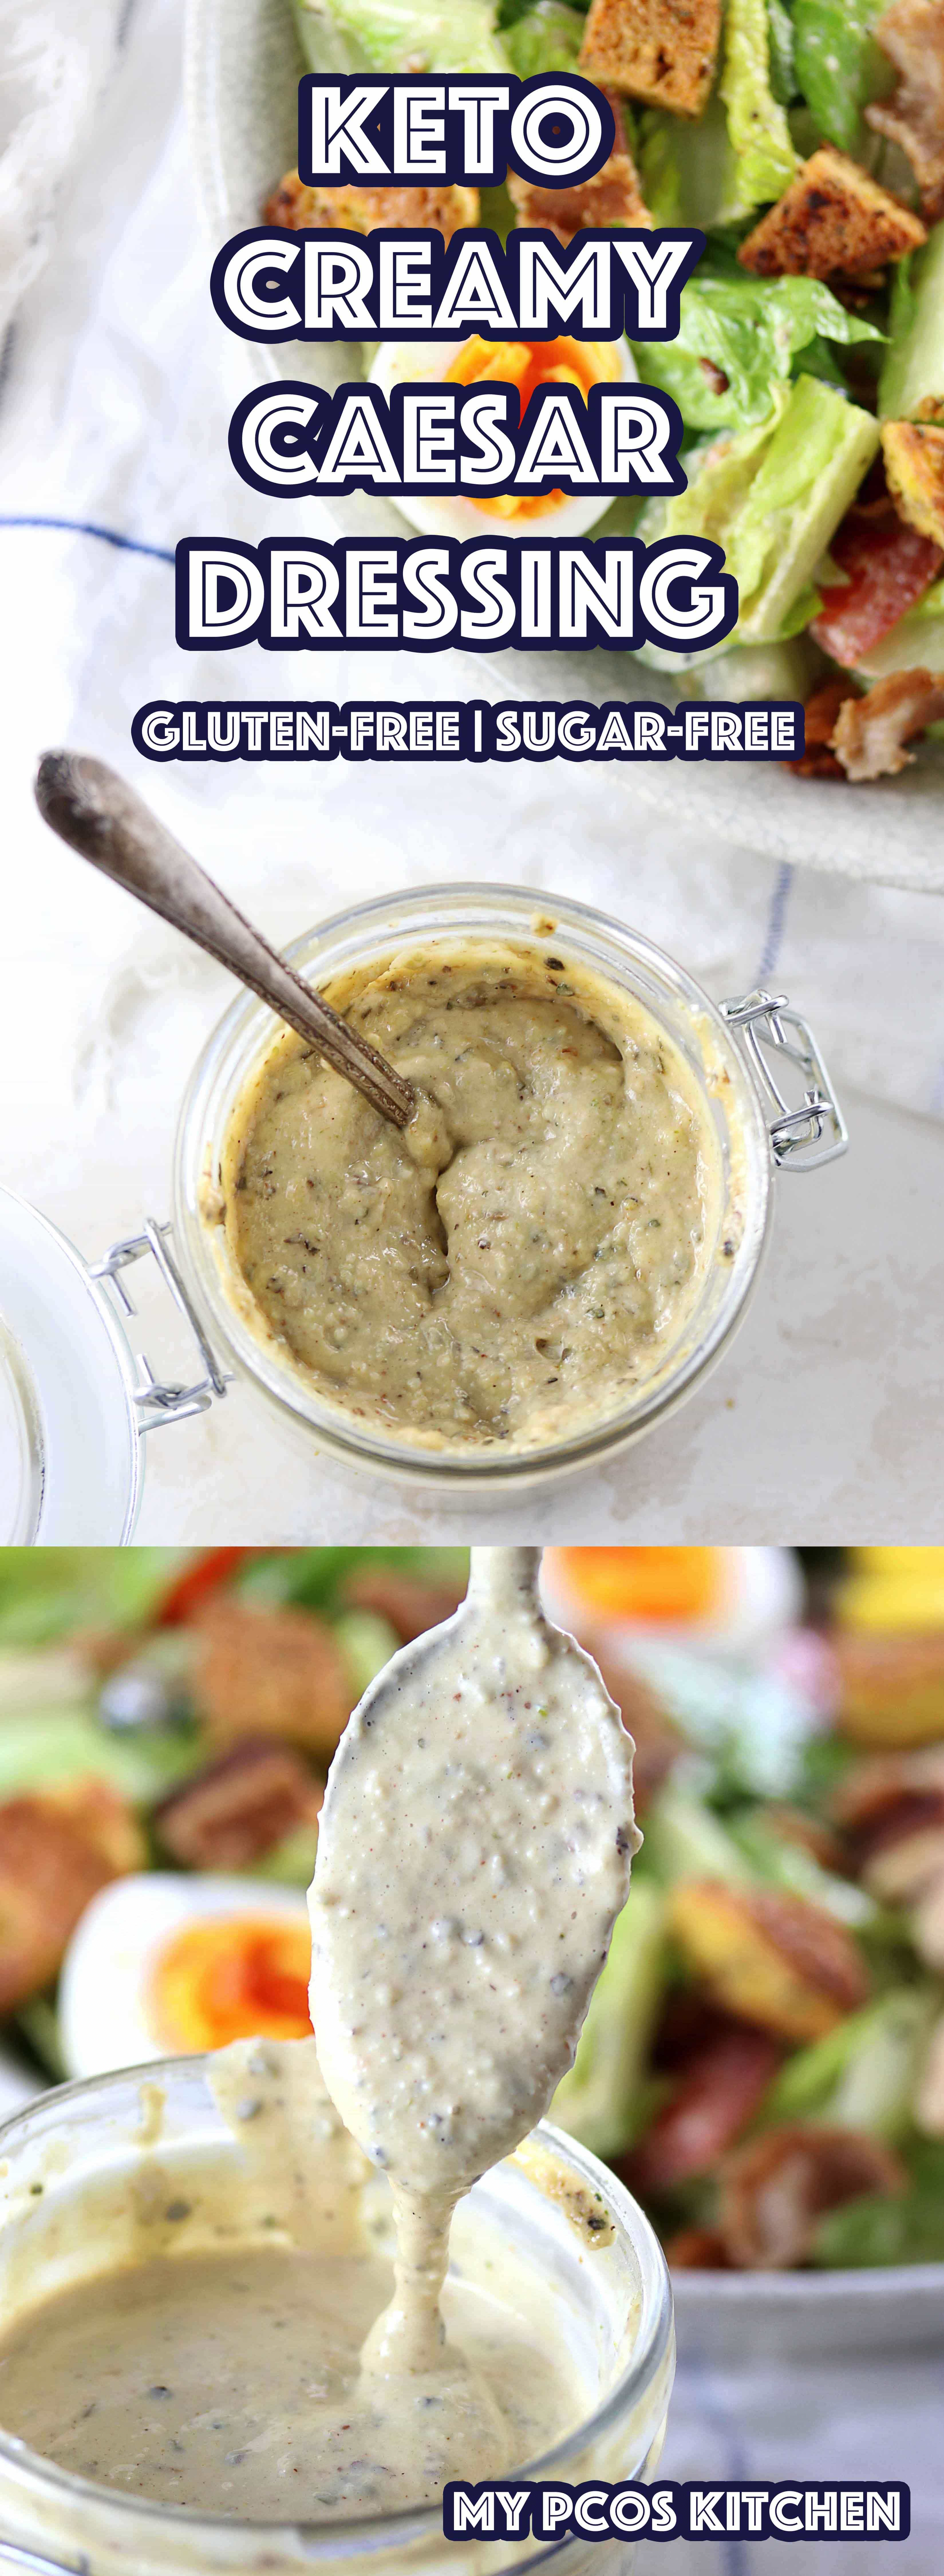 My PCOS Kitchen - Low Carb Homemade Caesar Salad Dressing - An easy and delicious homemade caesar dressing that's completely sugar-free and low carb! Paleo option available! #caesardressing #saladdressing #glutenfree #keto #lowcarb #lchf